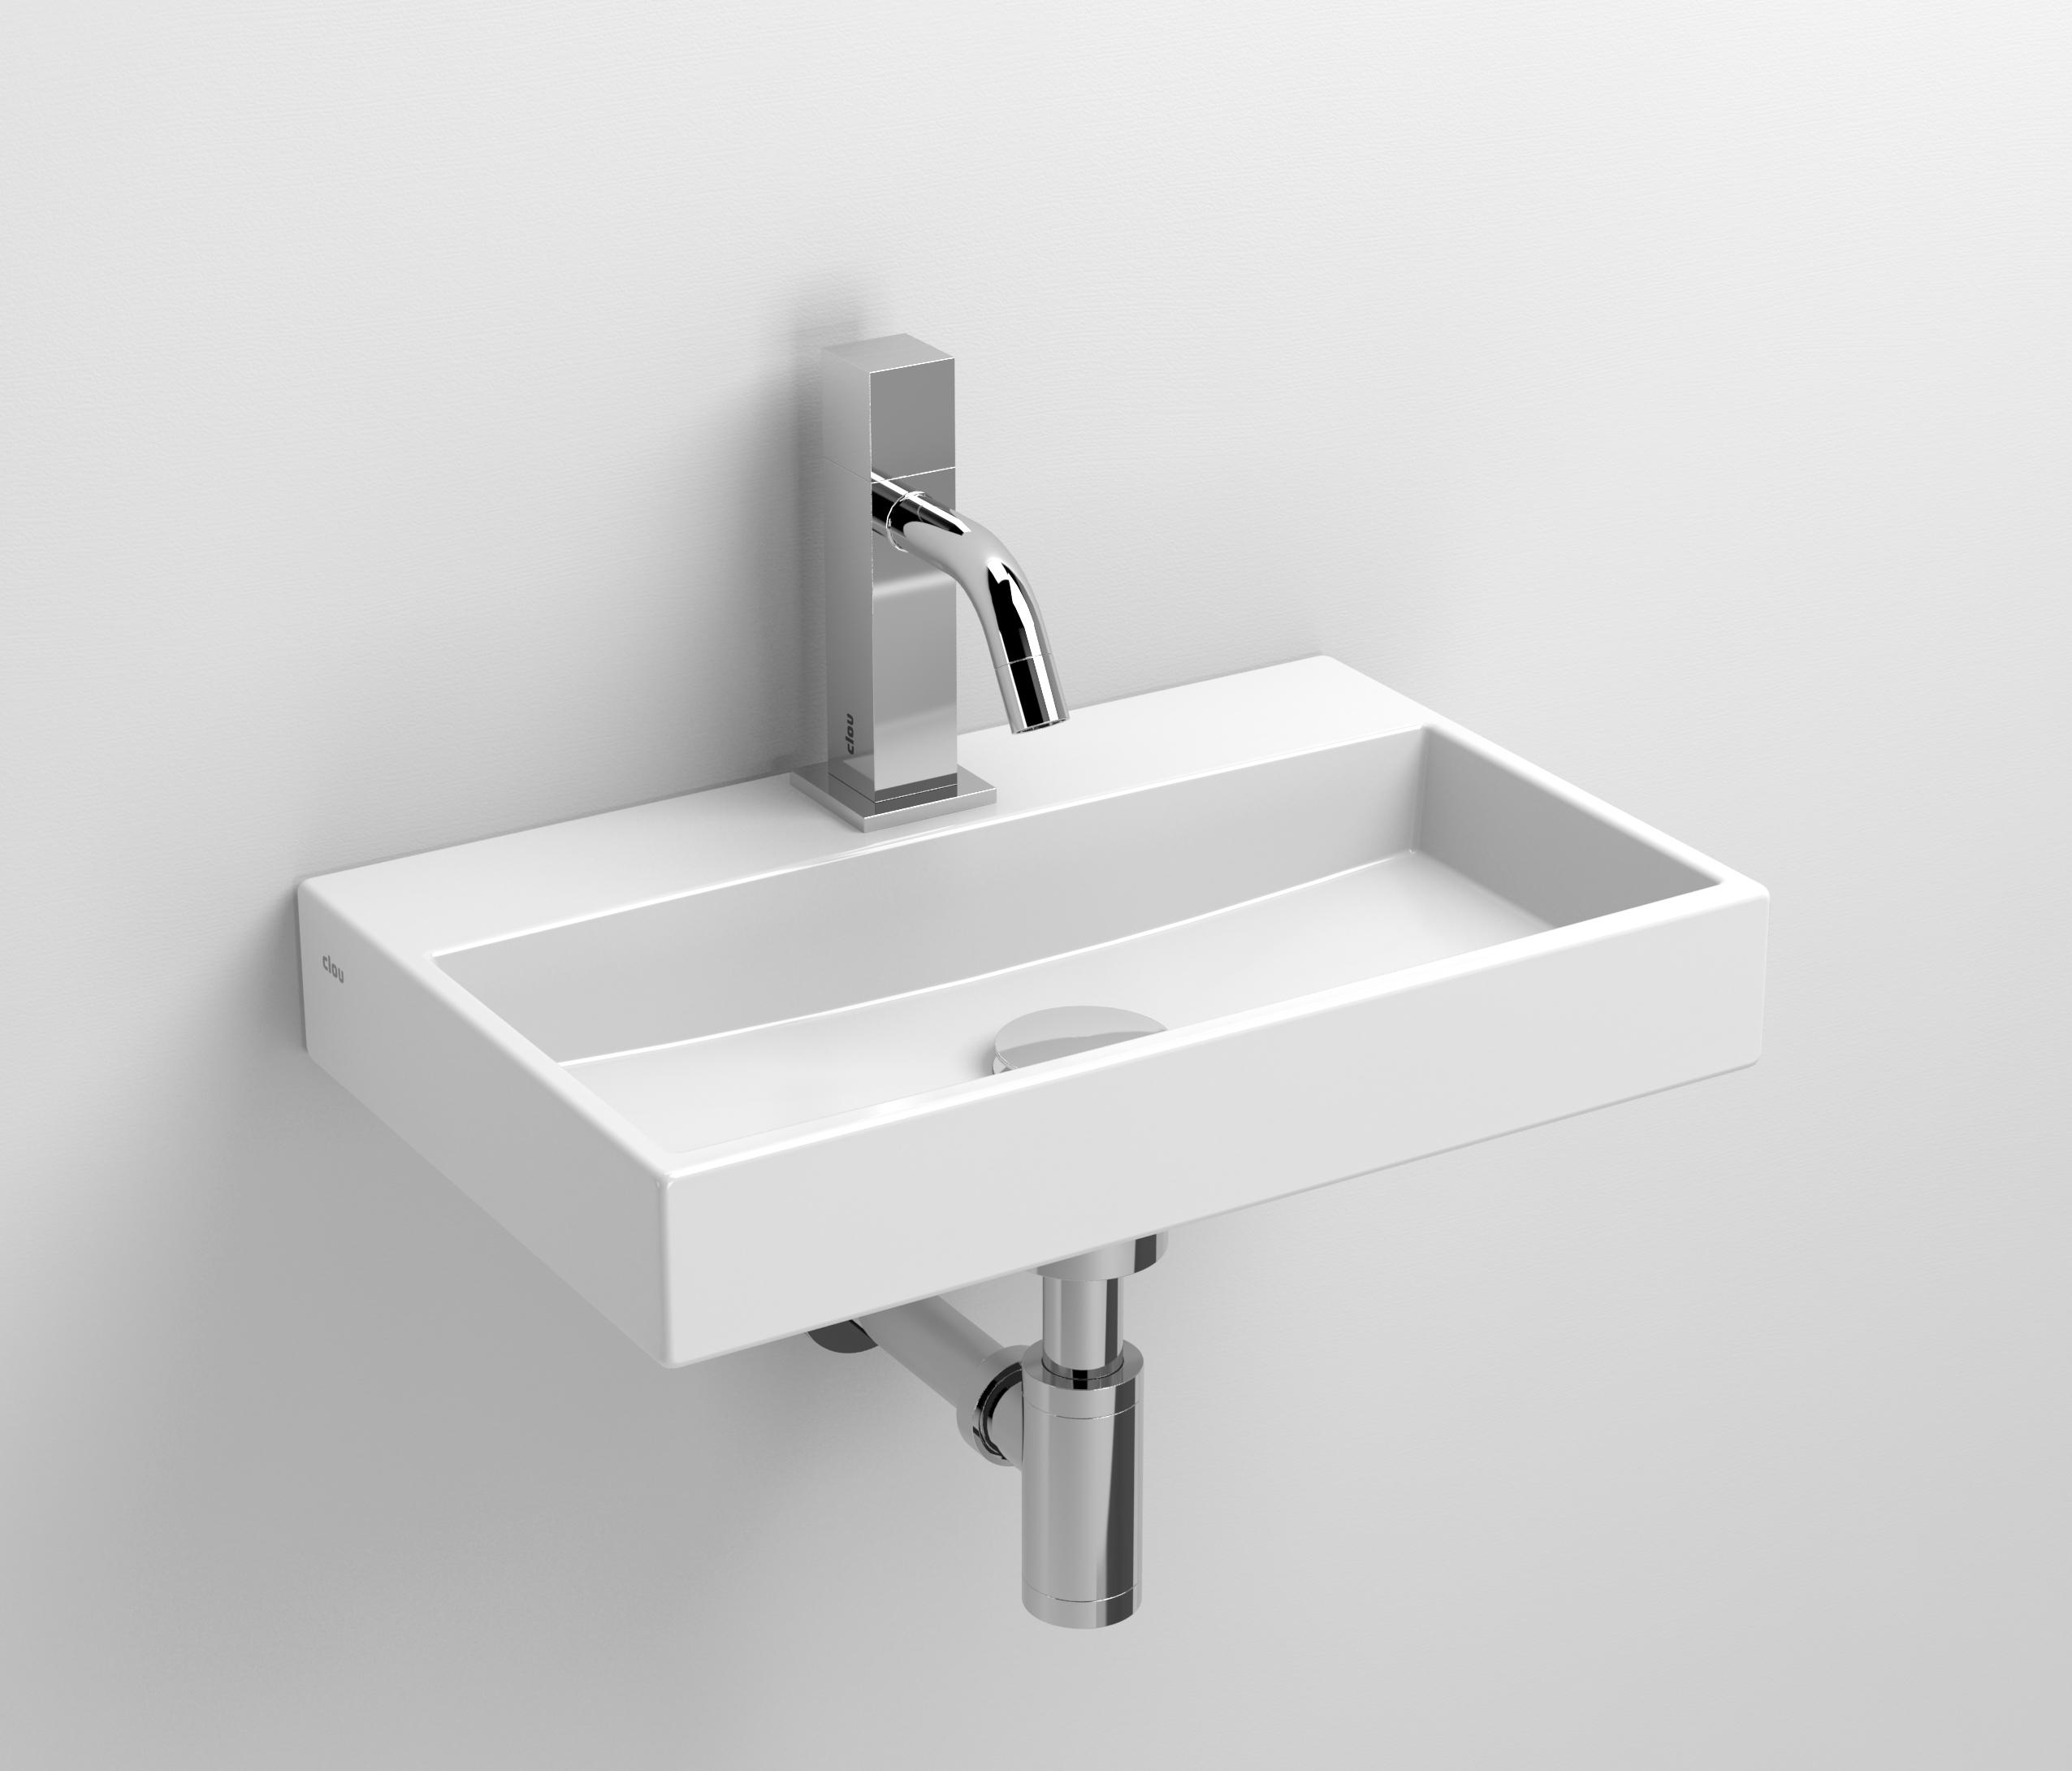 Uncategorized Smallest Hand Basin mini wash me hand basin cl03 03130 basins from clou by basins